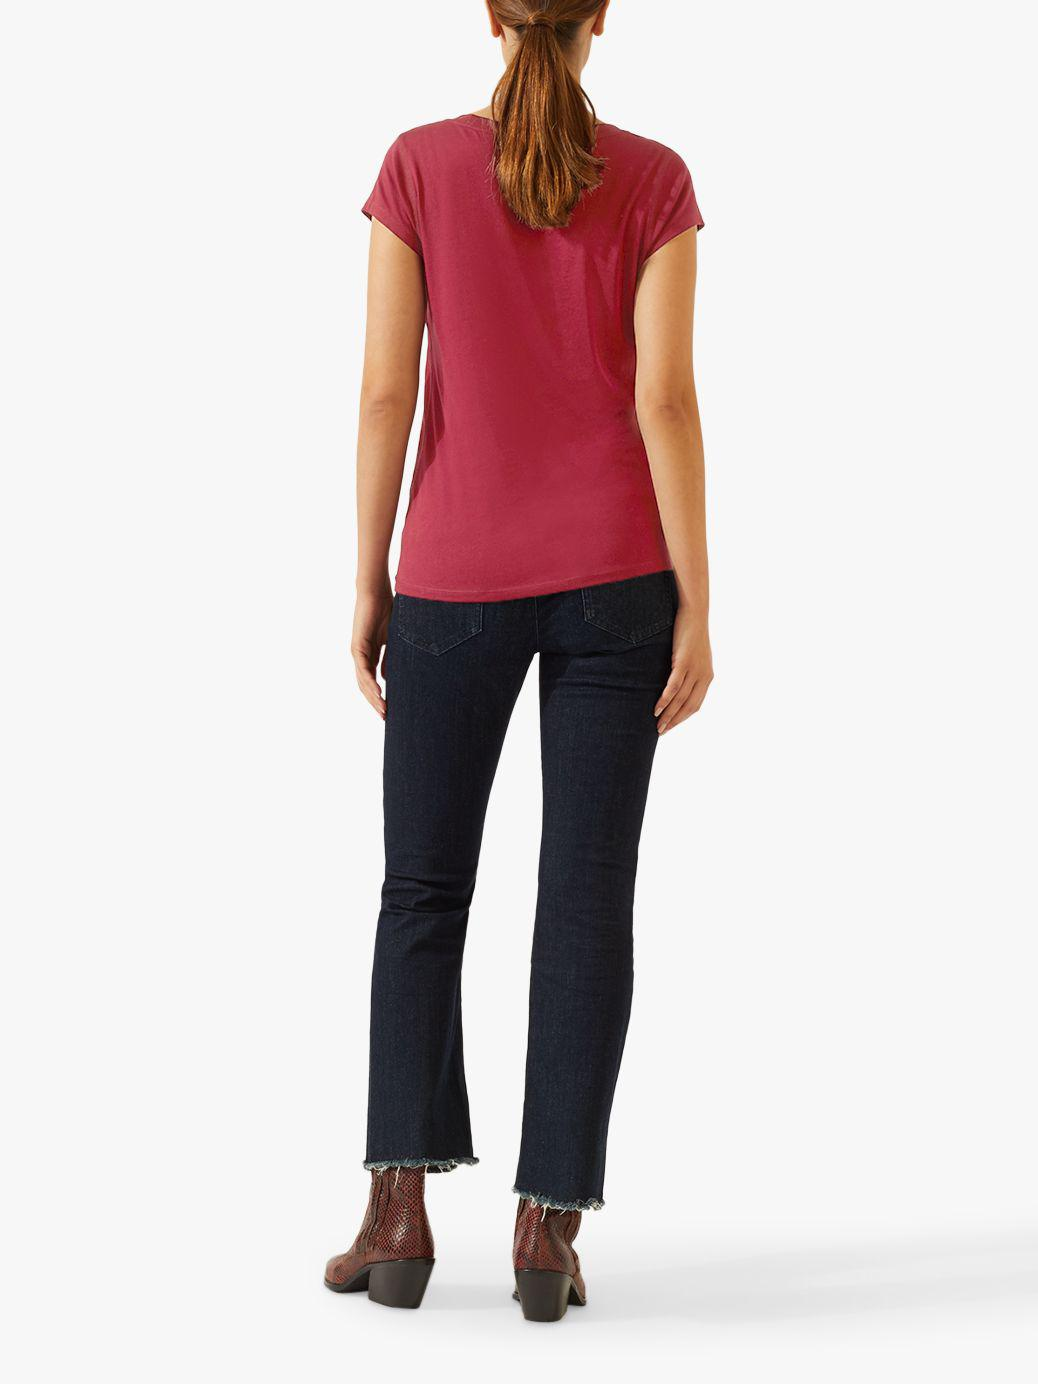 e869672891dc3f Jigsaw Pima Cotton Blend T-shirt in Red - Lyst